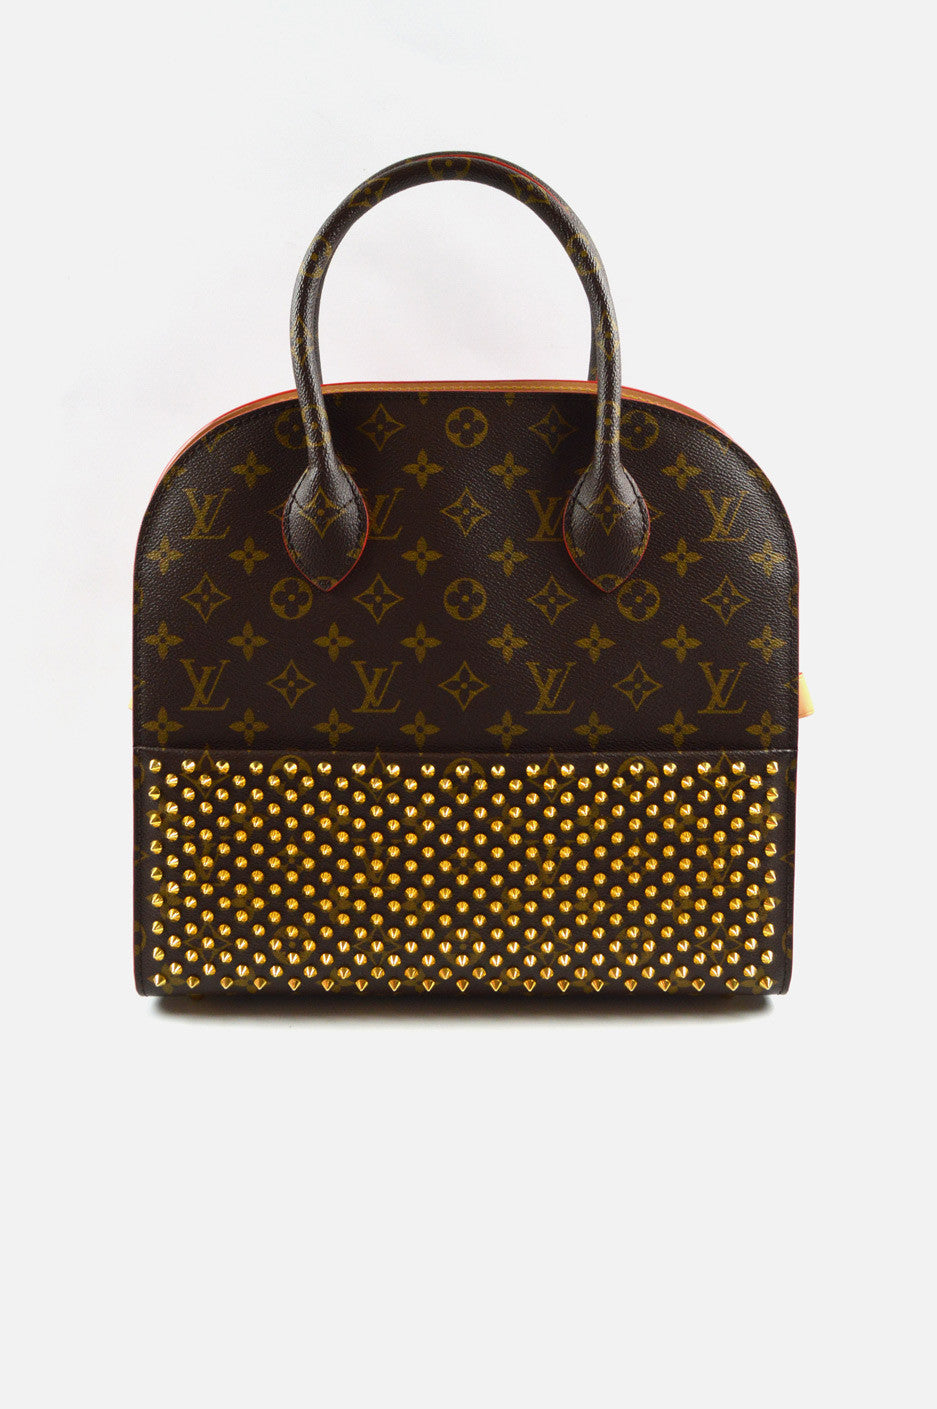 Limited Edition Monogram Iconoclasts Christian Louboutin Shopping Bag